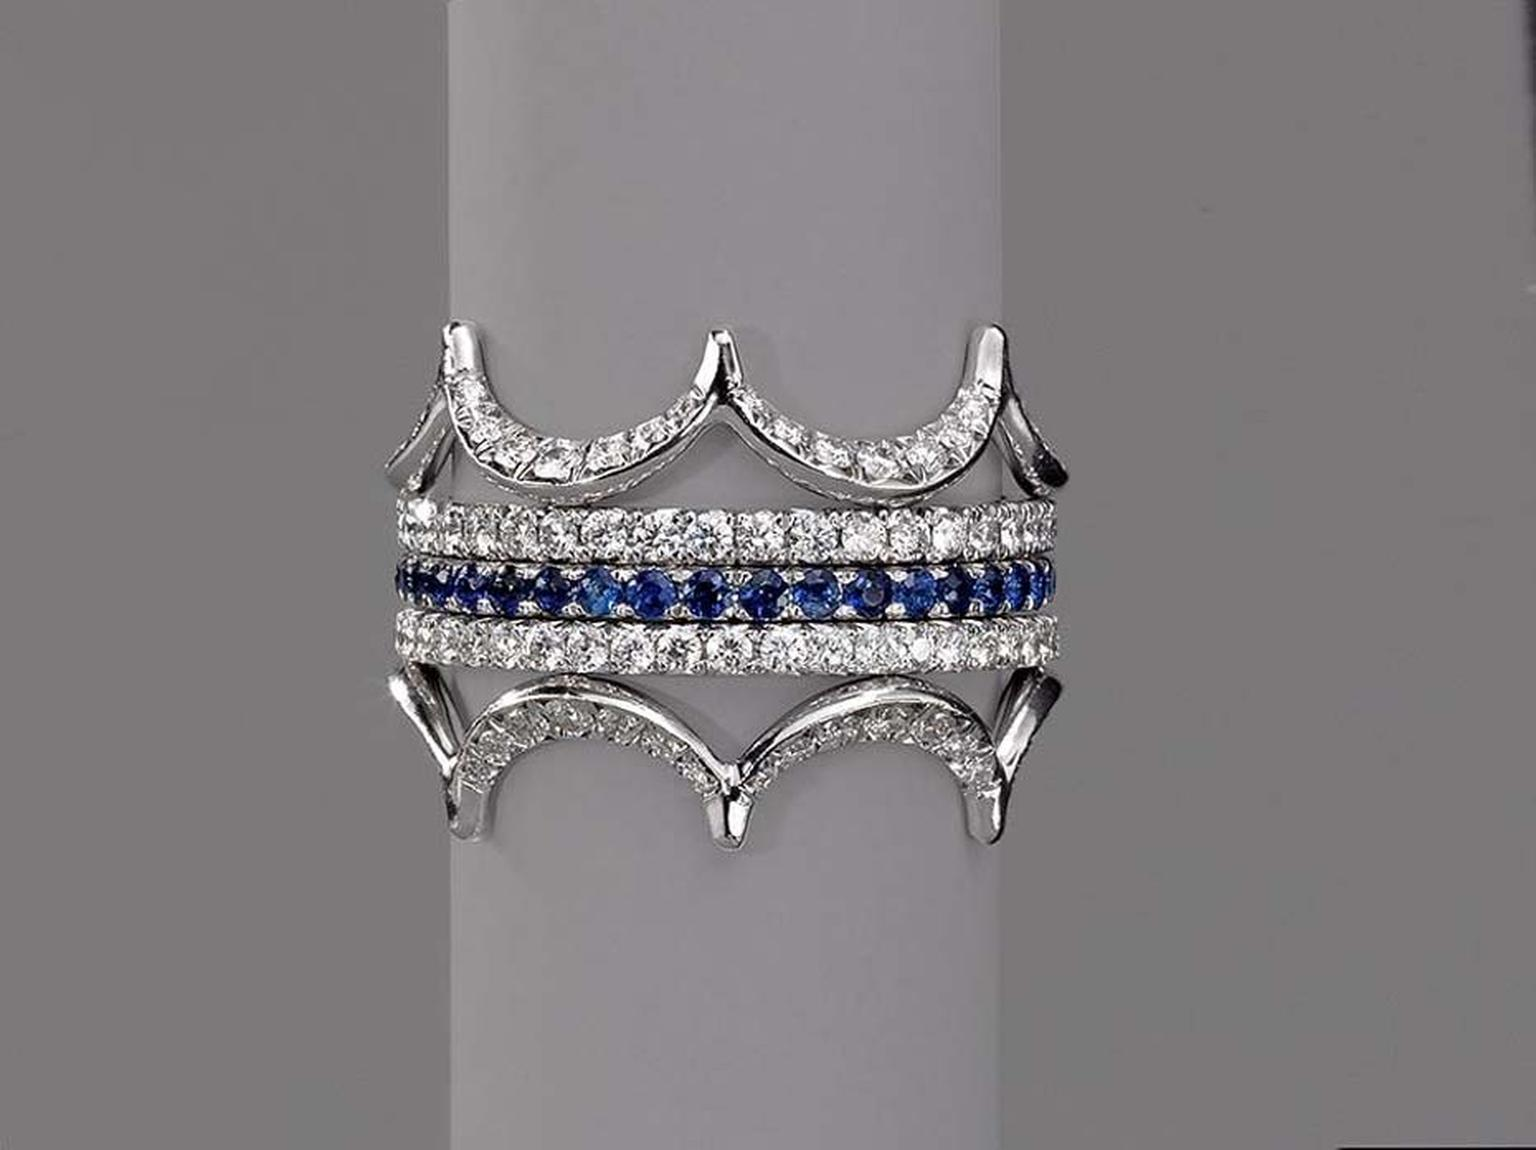 Jado's Crown rings were recently exhibited at Couture Fashion Week in New York. Pictured is the Jado Crown in white gold with diamonds and sapphires.